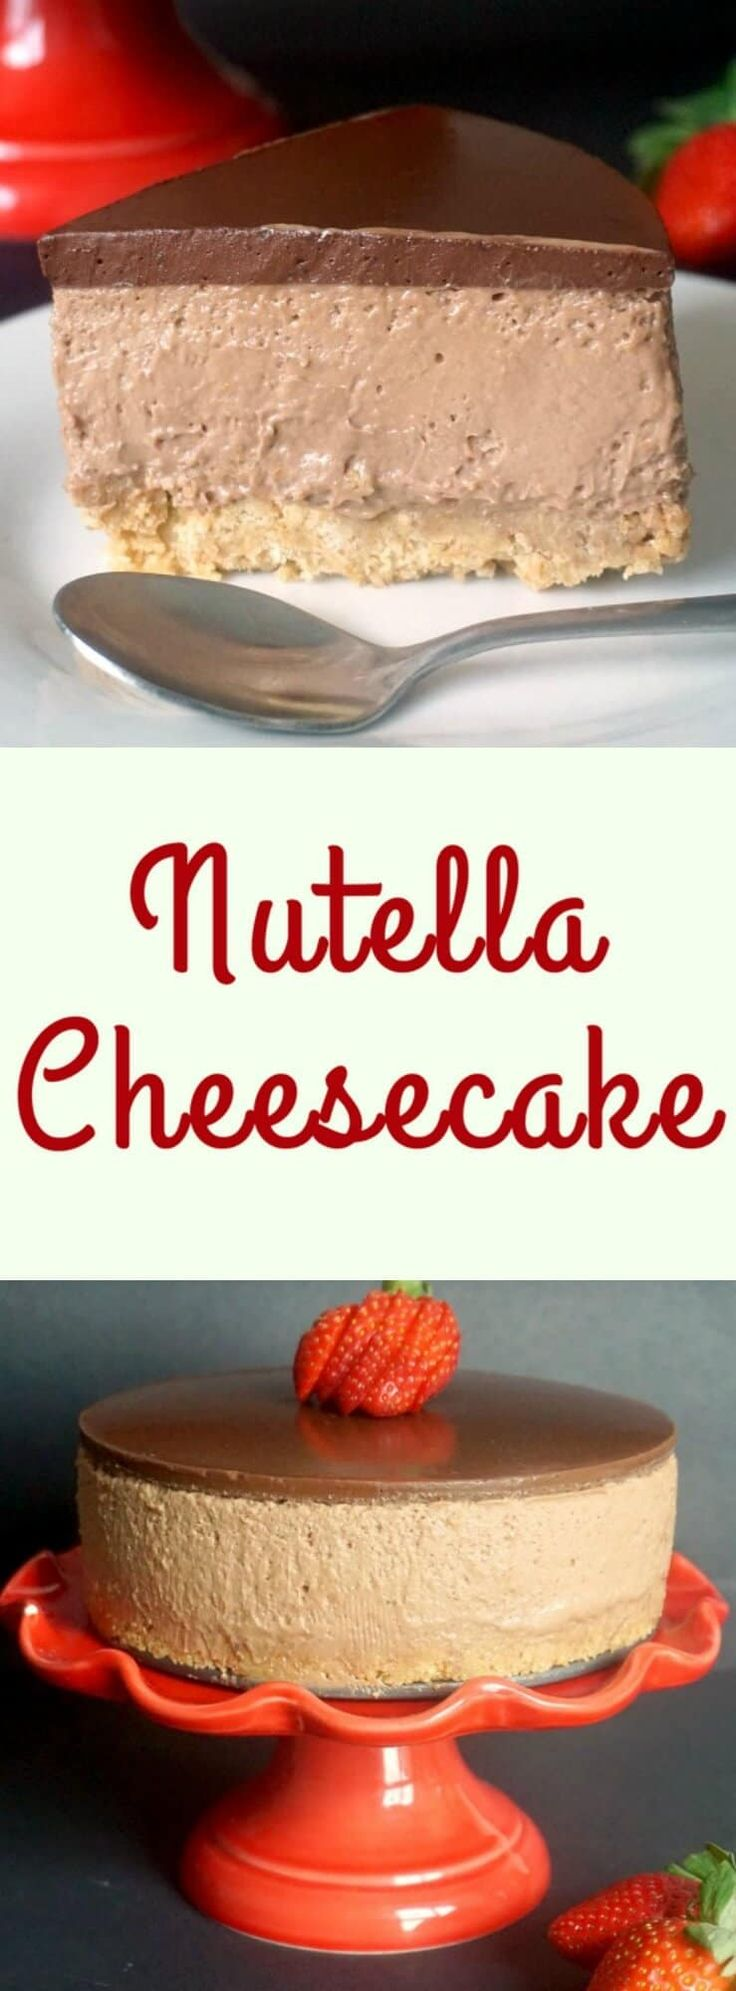 Nutella Cheesecake, an indulgent no-bake cake that is perfect for Valentine's Day. It has a silky texture, it's rich, yet light at the same time, and it's has a wonderful orange aroma that gives it a nice delicate kick. An impressive dessert for your other half. #nutella , #nutellacheesecake, #cheesecake , #valentinesday , #dessertsforvalentinesday, #valentinesdaydesserts, #nobake